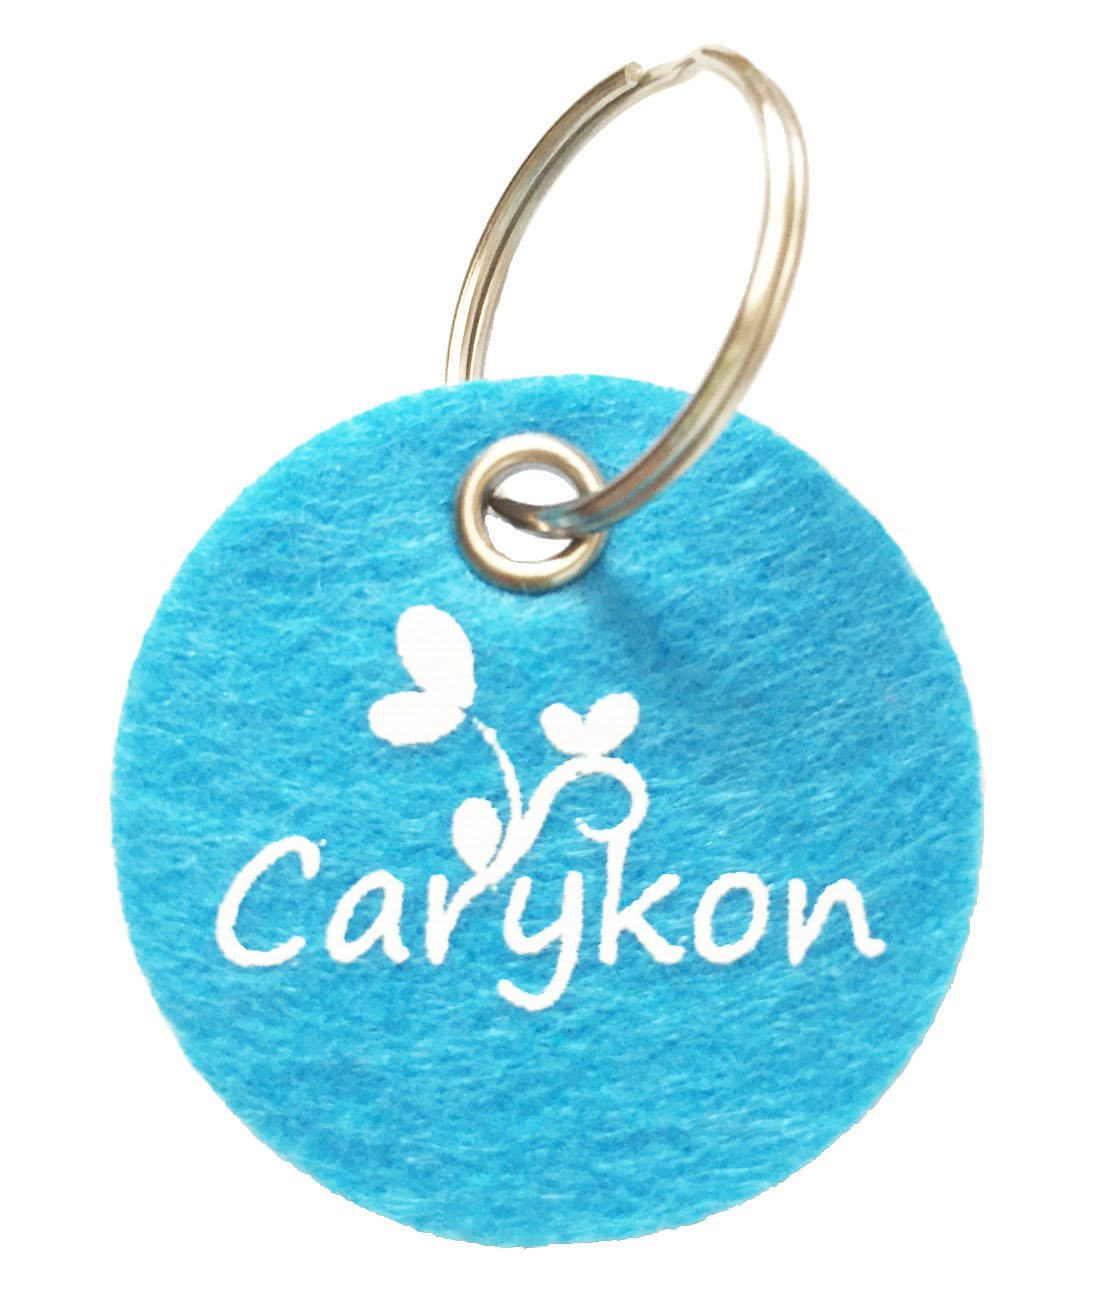 Carykon 20Pcs Dog Hair Clips Heart Sunglass Pet Hair Bows Alligator Hairpins Small Animal Hair Barrettes Pet Hair Accessories, Multicolor by Carykon (Image #7)